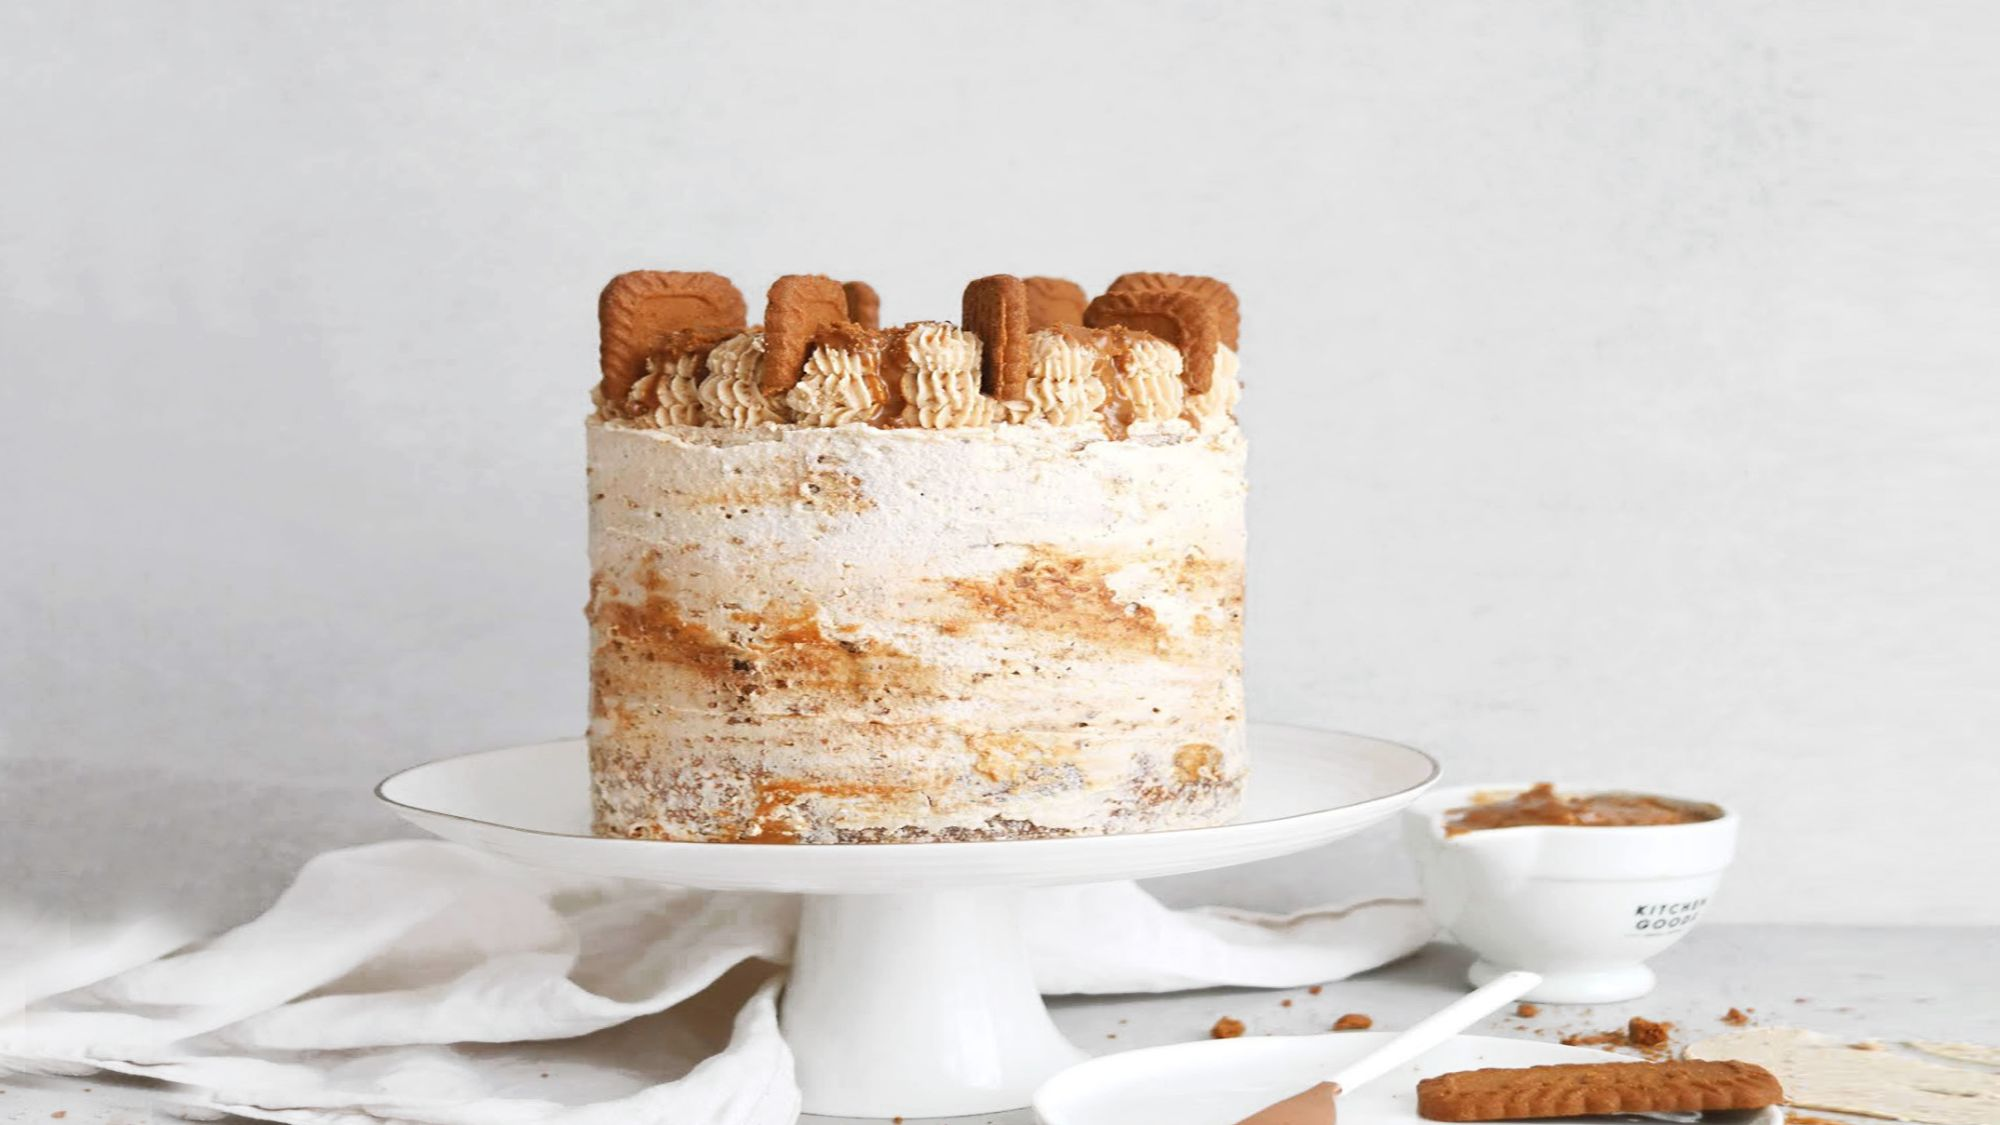 Biscoff Cake with simple piped decorations and cookies